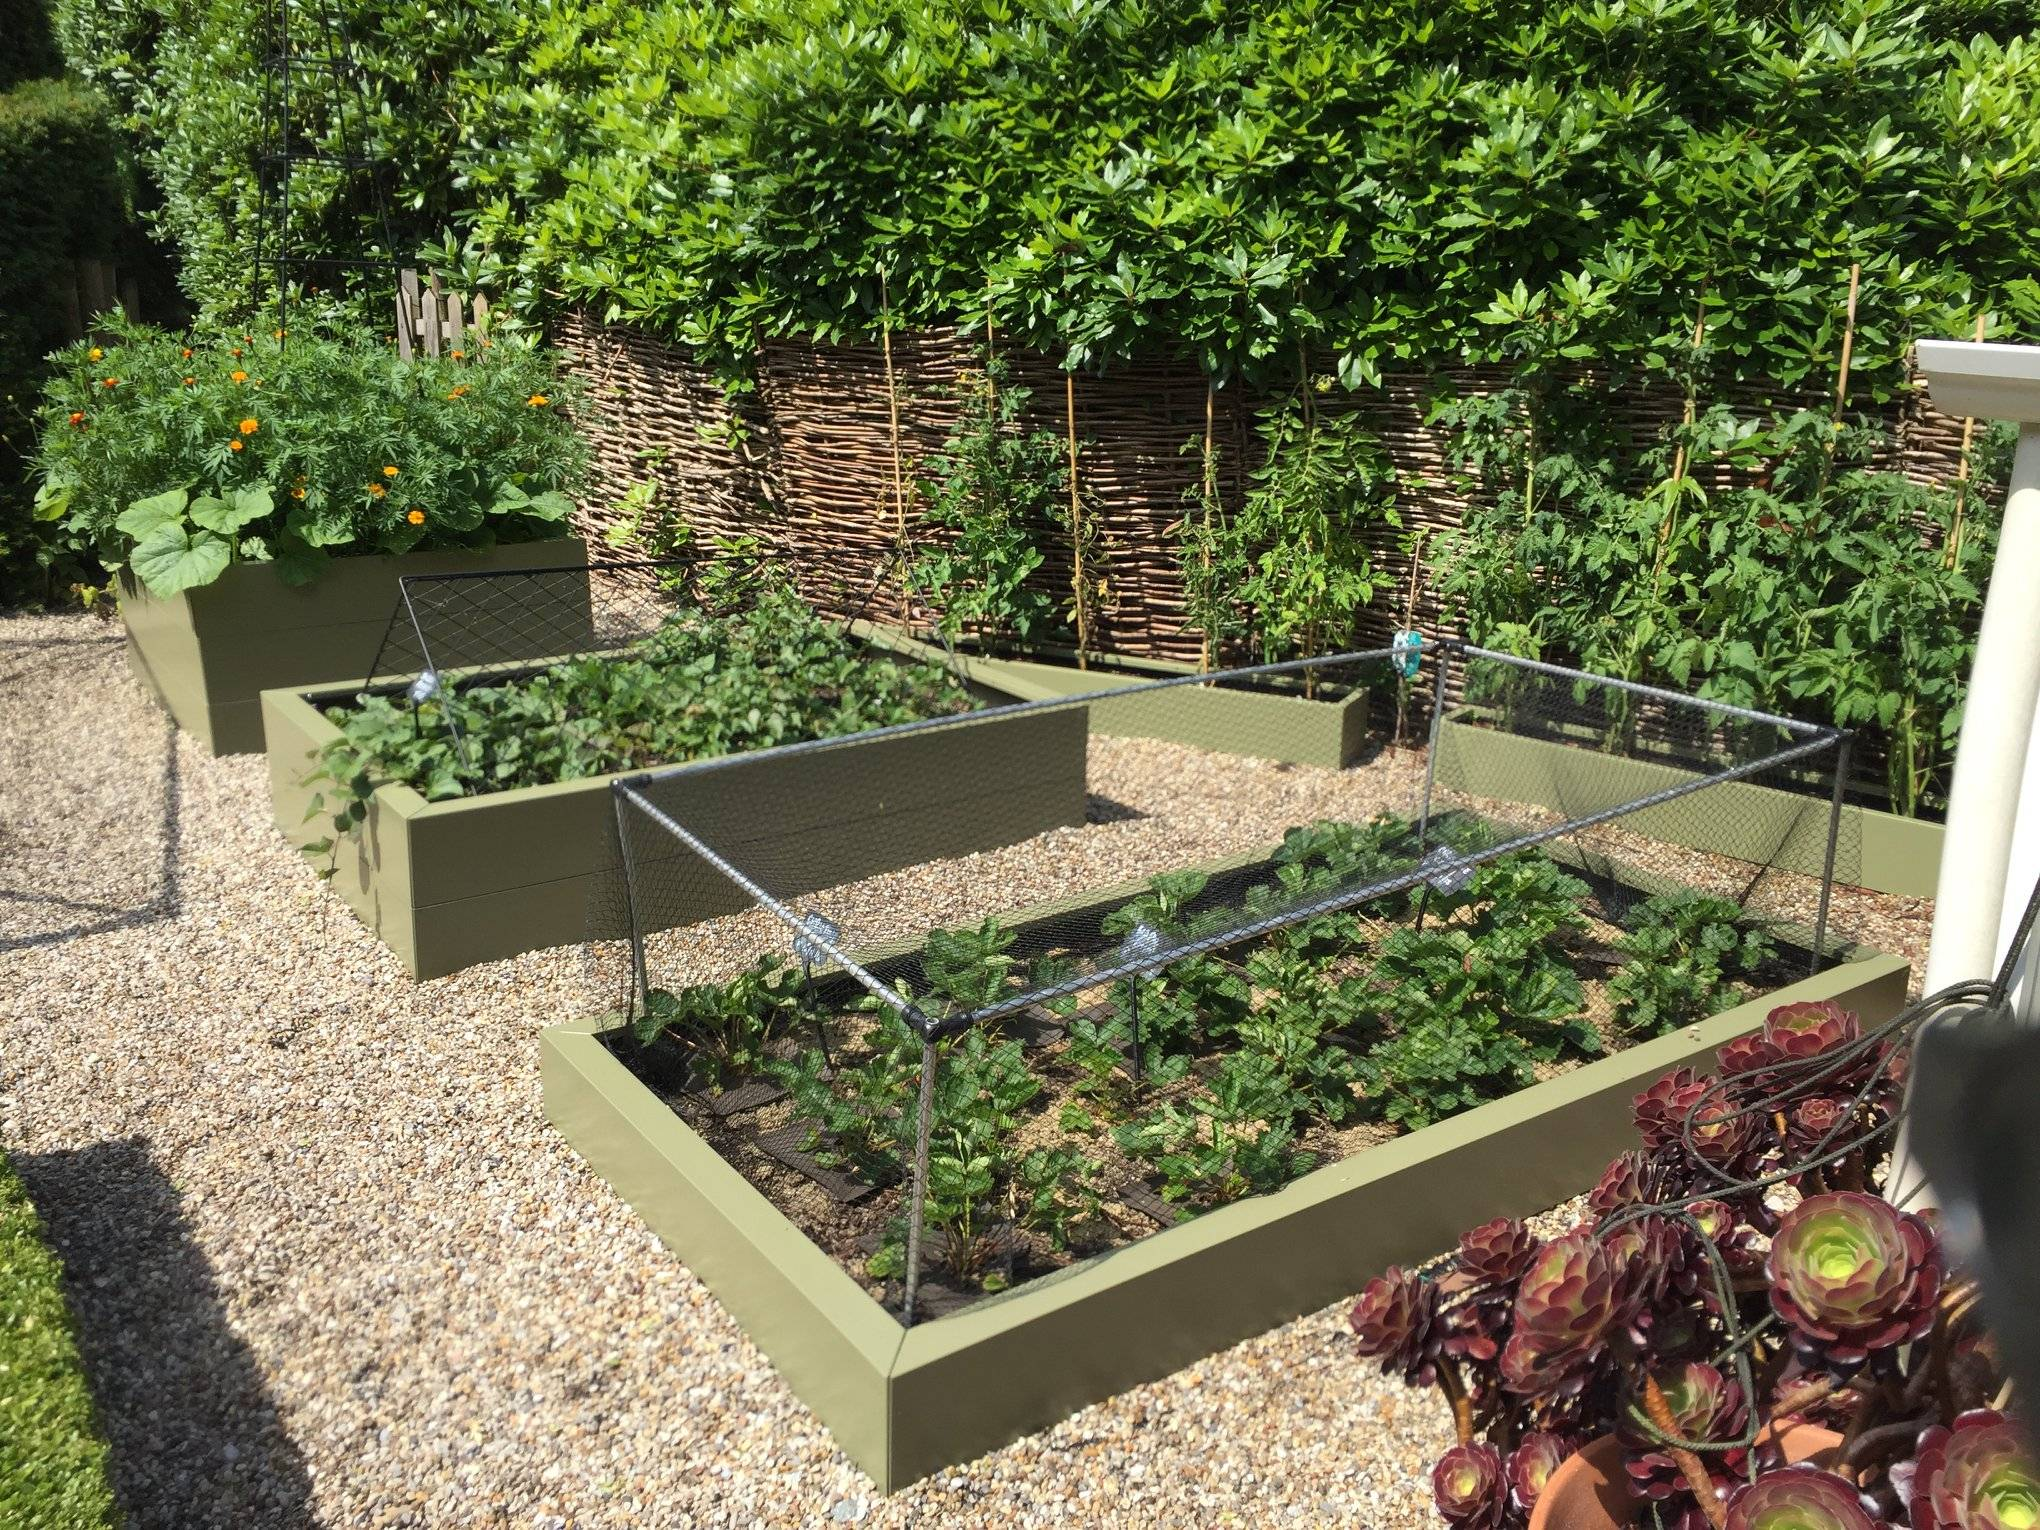 Kitchen-Garden-120719